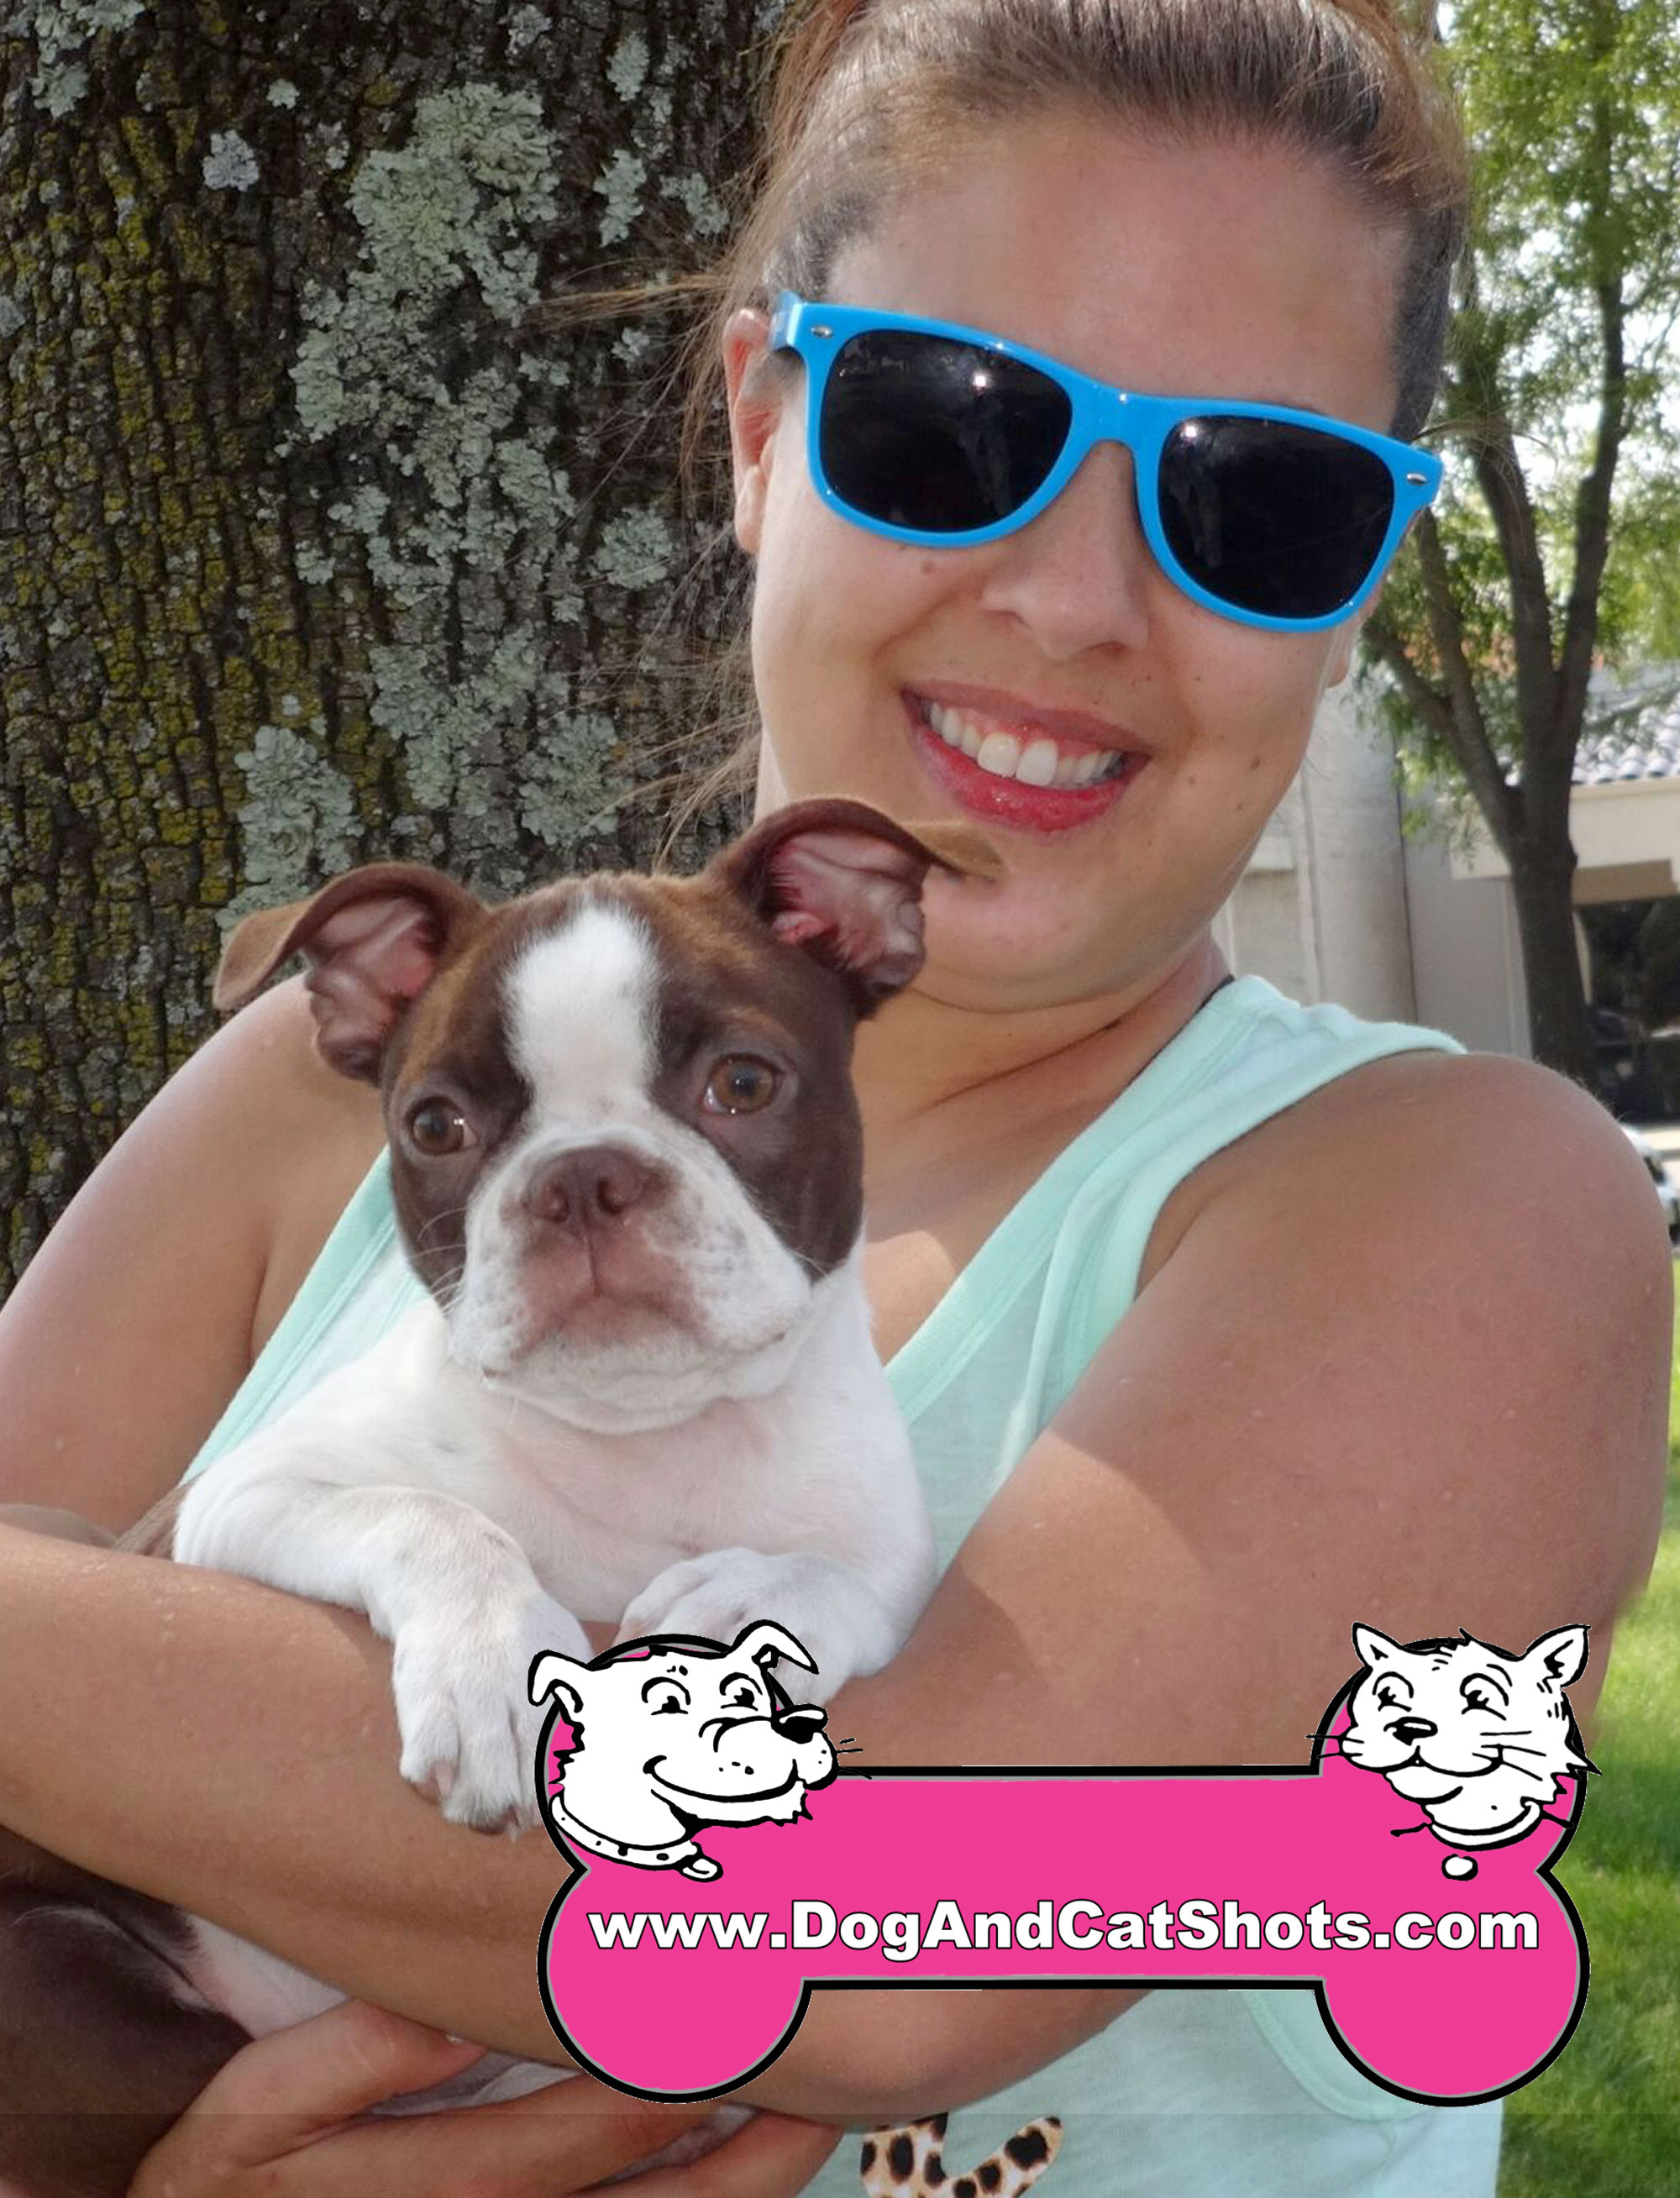 22-Fair-Oaks,-Boston-Terrier,-Buster-dogs-and-cat-shots